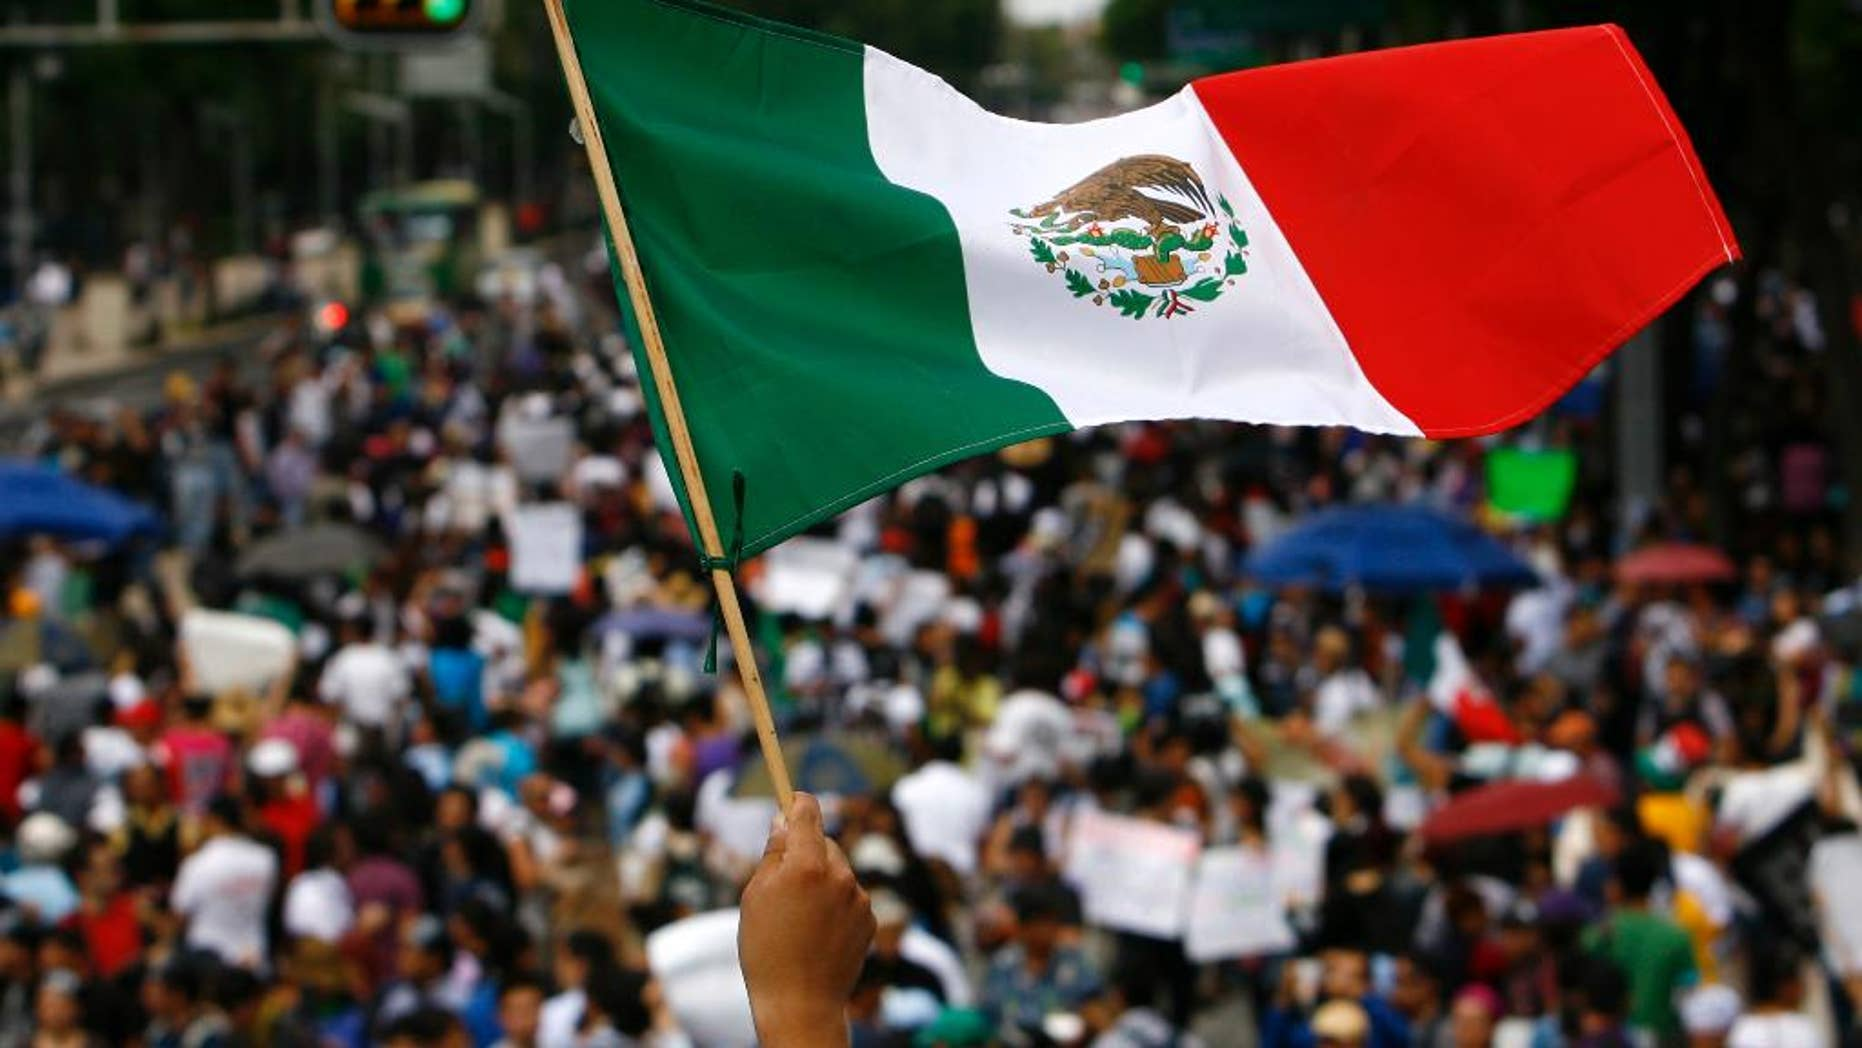 FILE - In this July 7, 2012 file photo, a woman waves a national flag as Mexicans march along Avenida Reforma on their way to Mexico City's main plaza, the Zocalo. The results of the last polls to be released before the Sunday, June 7, 2015 midterm elections show Mexico's ruling party appears poised to retain its leading position in congress, but may lose the ability to cobble together a majority with smaller parties. (AP Photo/Marco Ugarte, File)